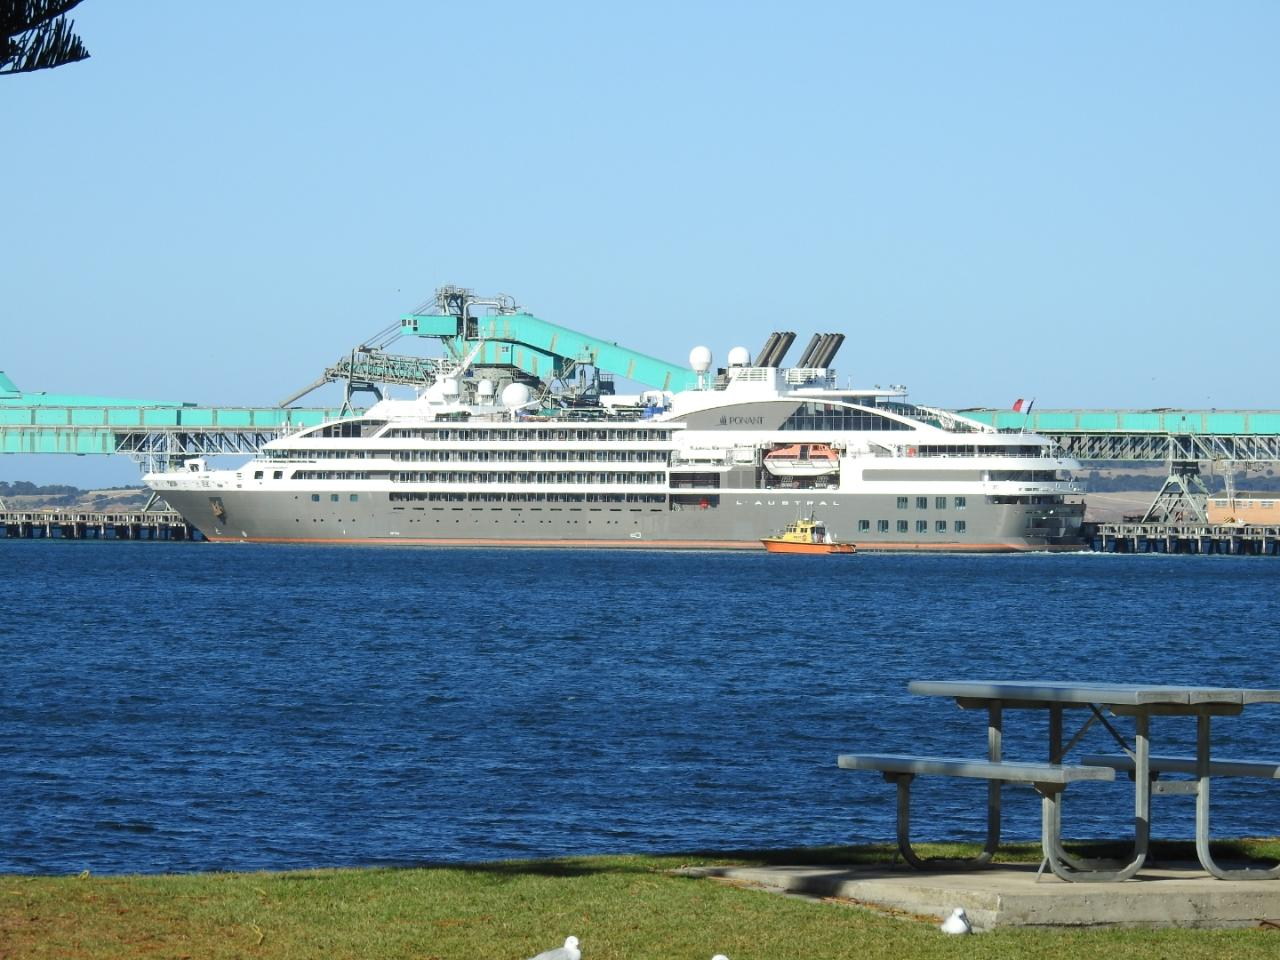 Xplore Eyre: Port Lincoln Cruise Ships Tours